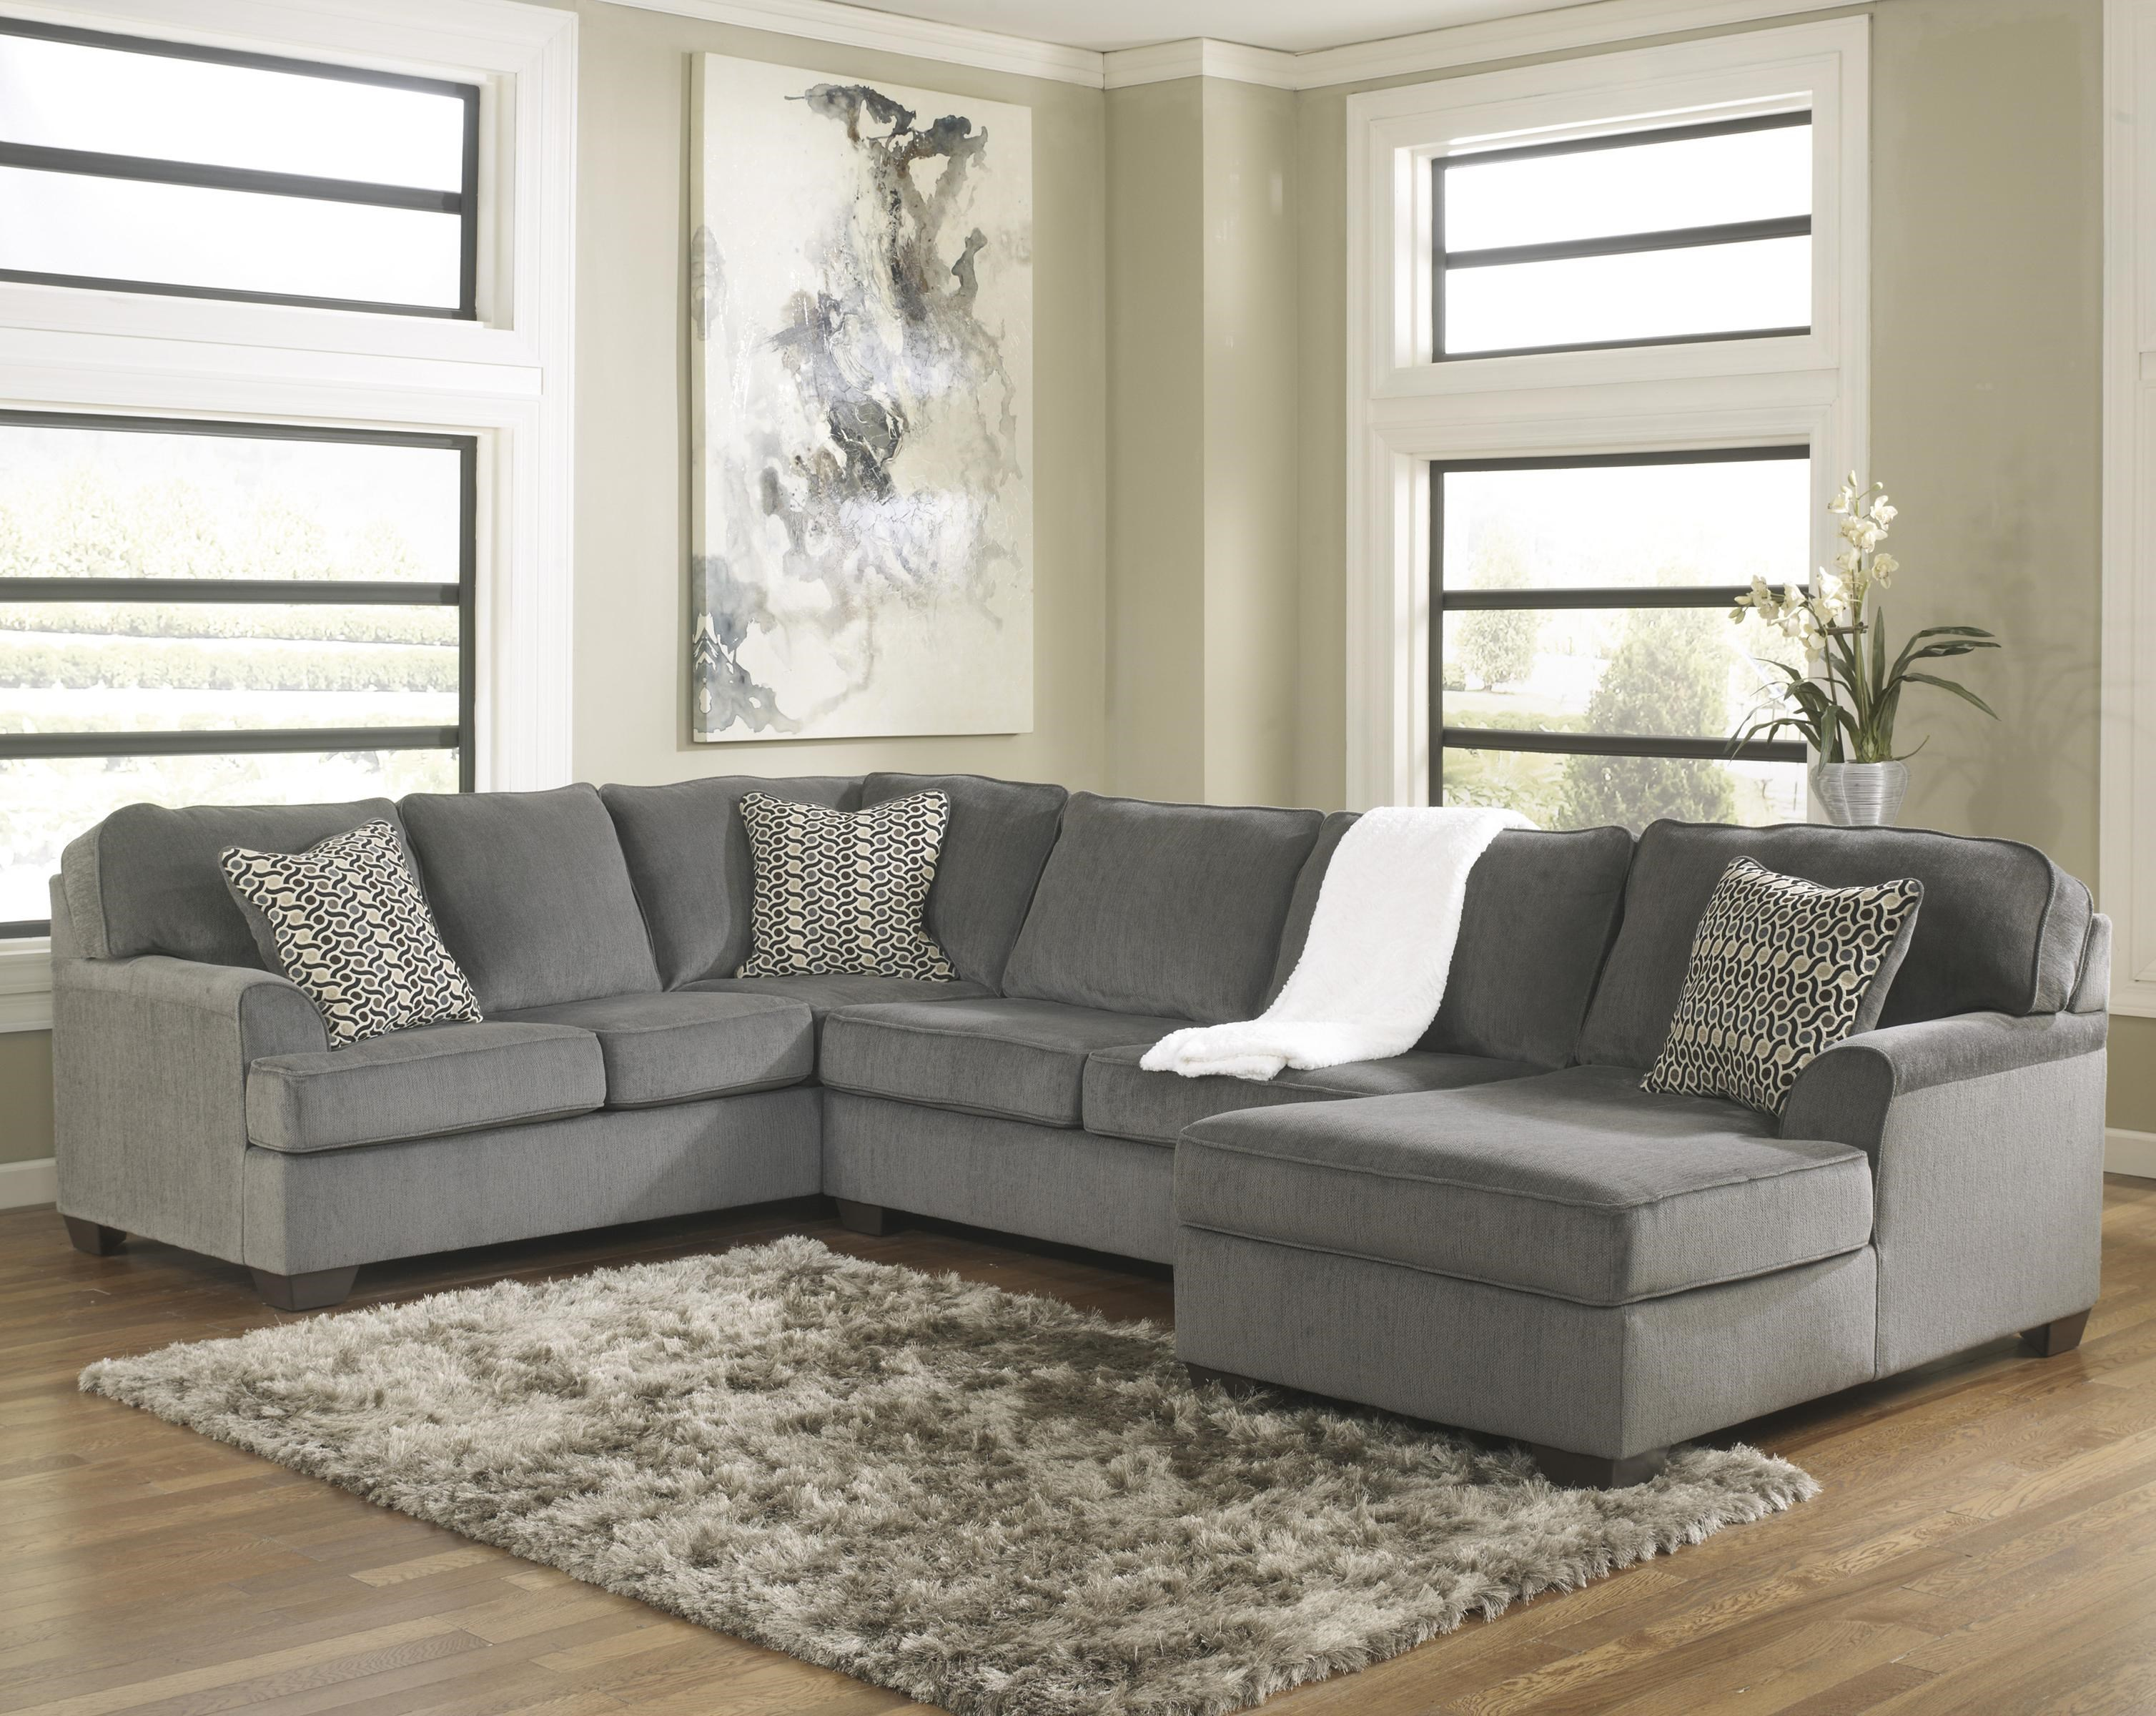 Perfect Ashley Furniture Loric   SmokeContemporary 3 Piece Sectional With Chaise ...